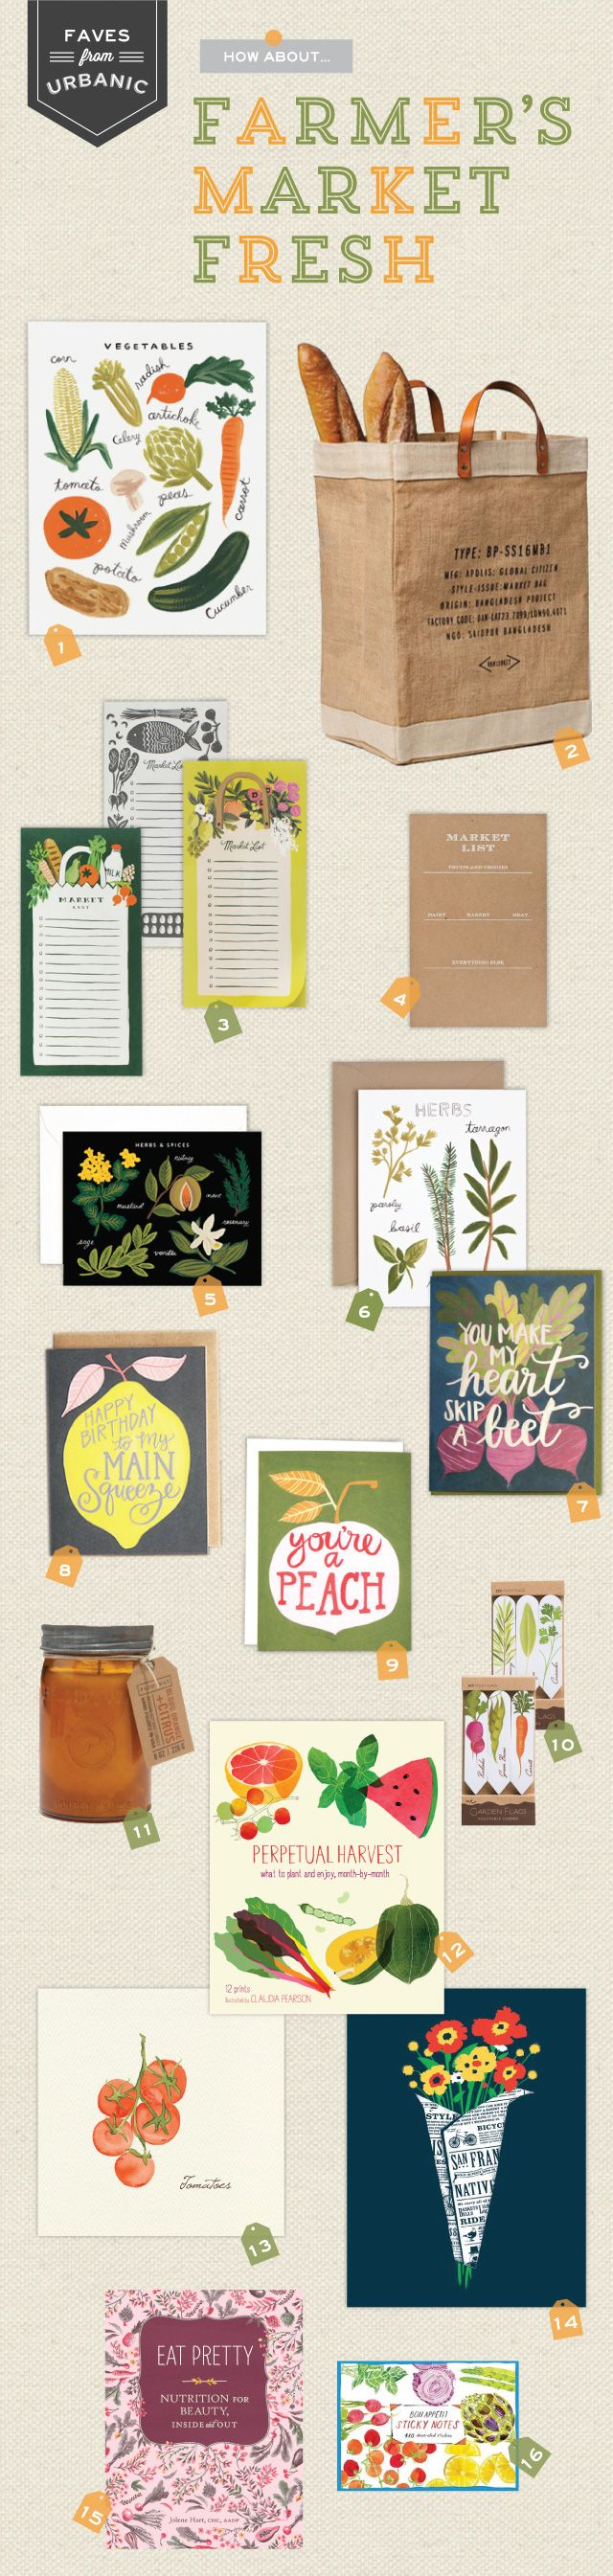 Stationery Round Up Inspired by The Farmer's Market by Urbanic via Oh So Beautiful Paper